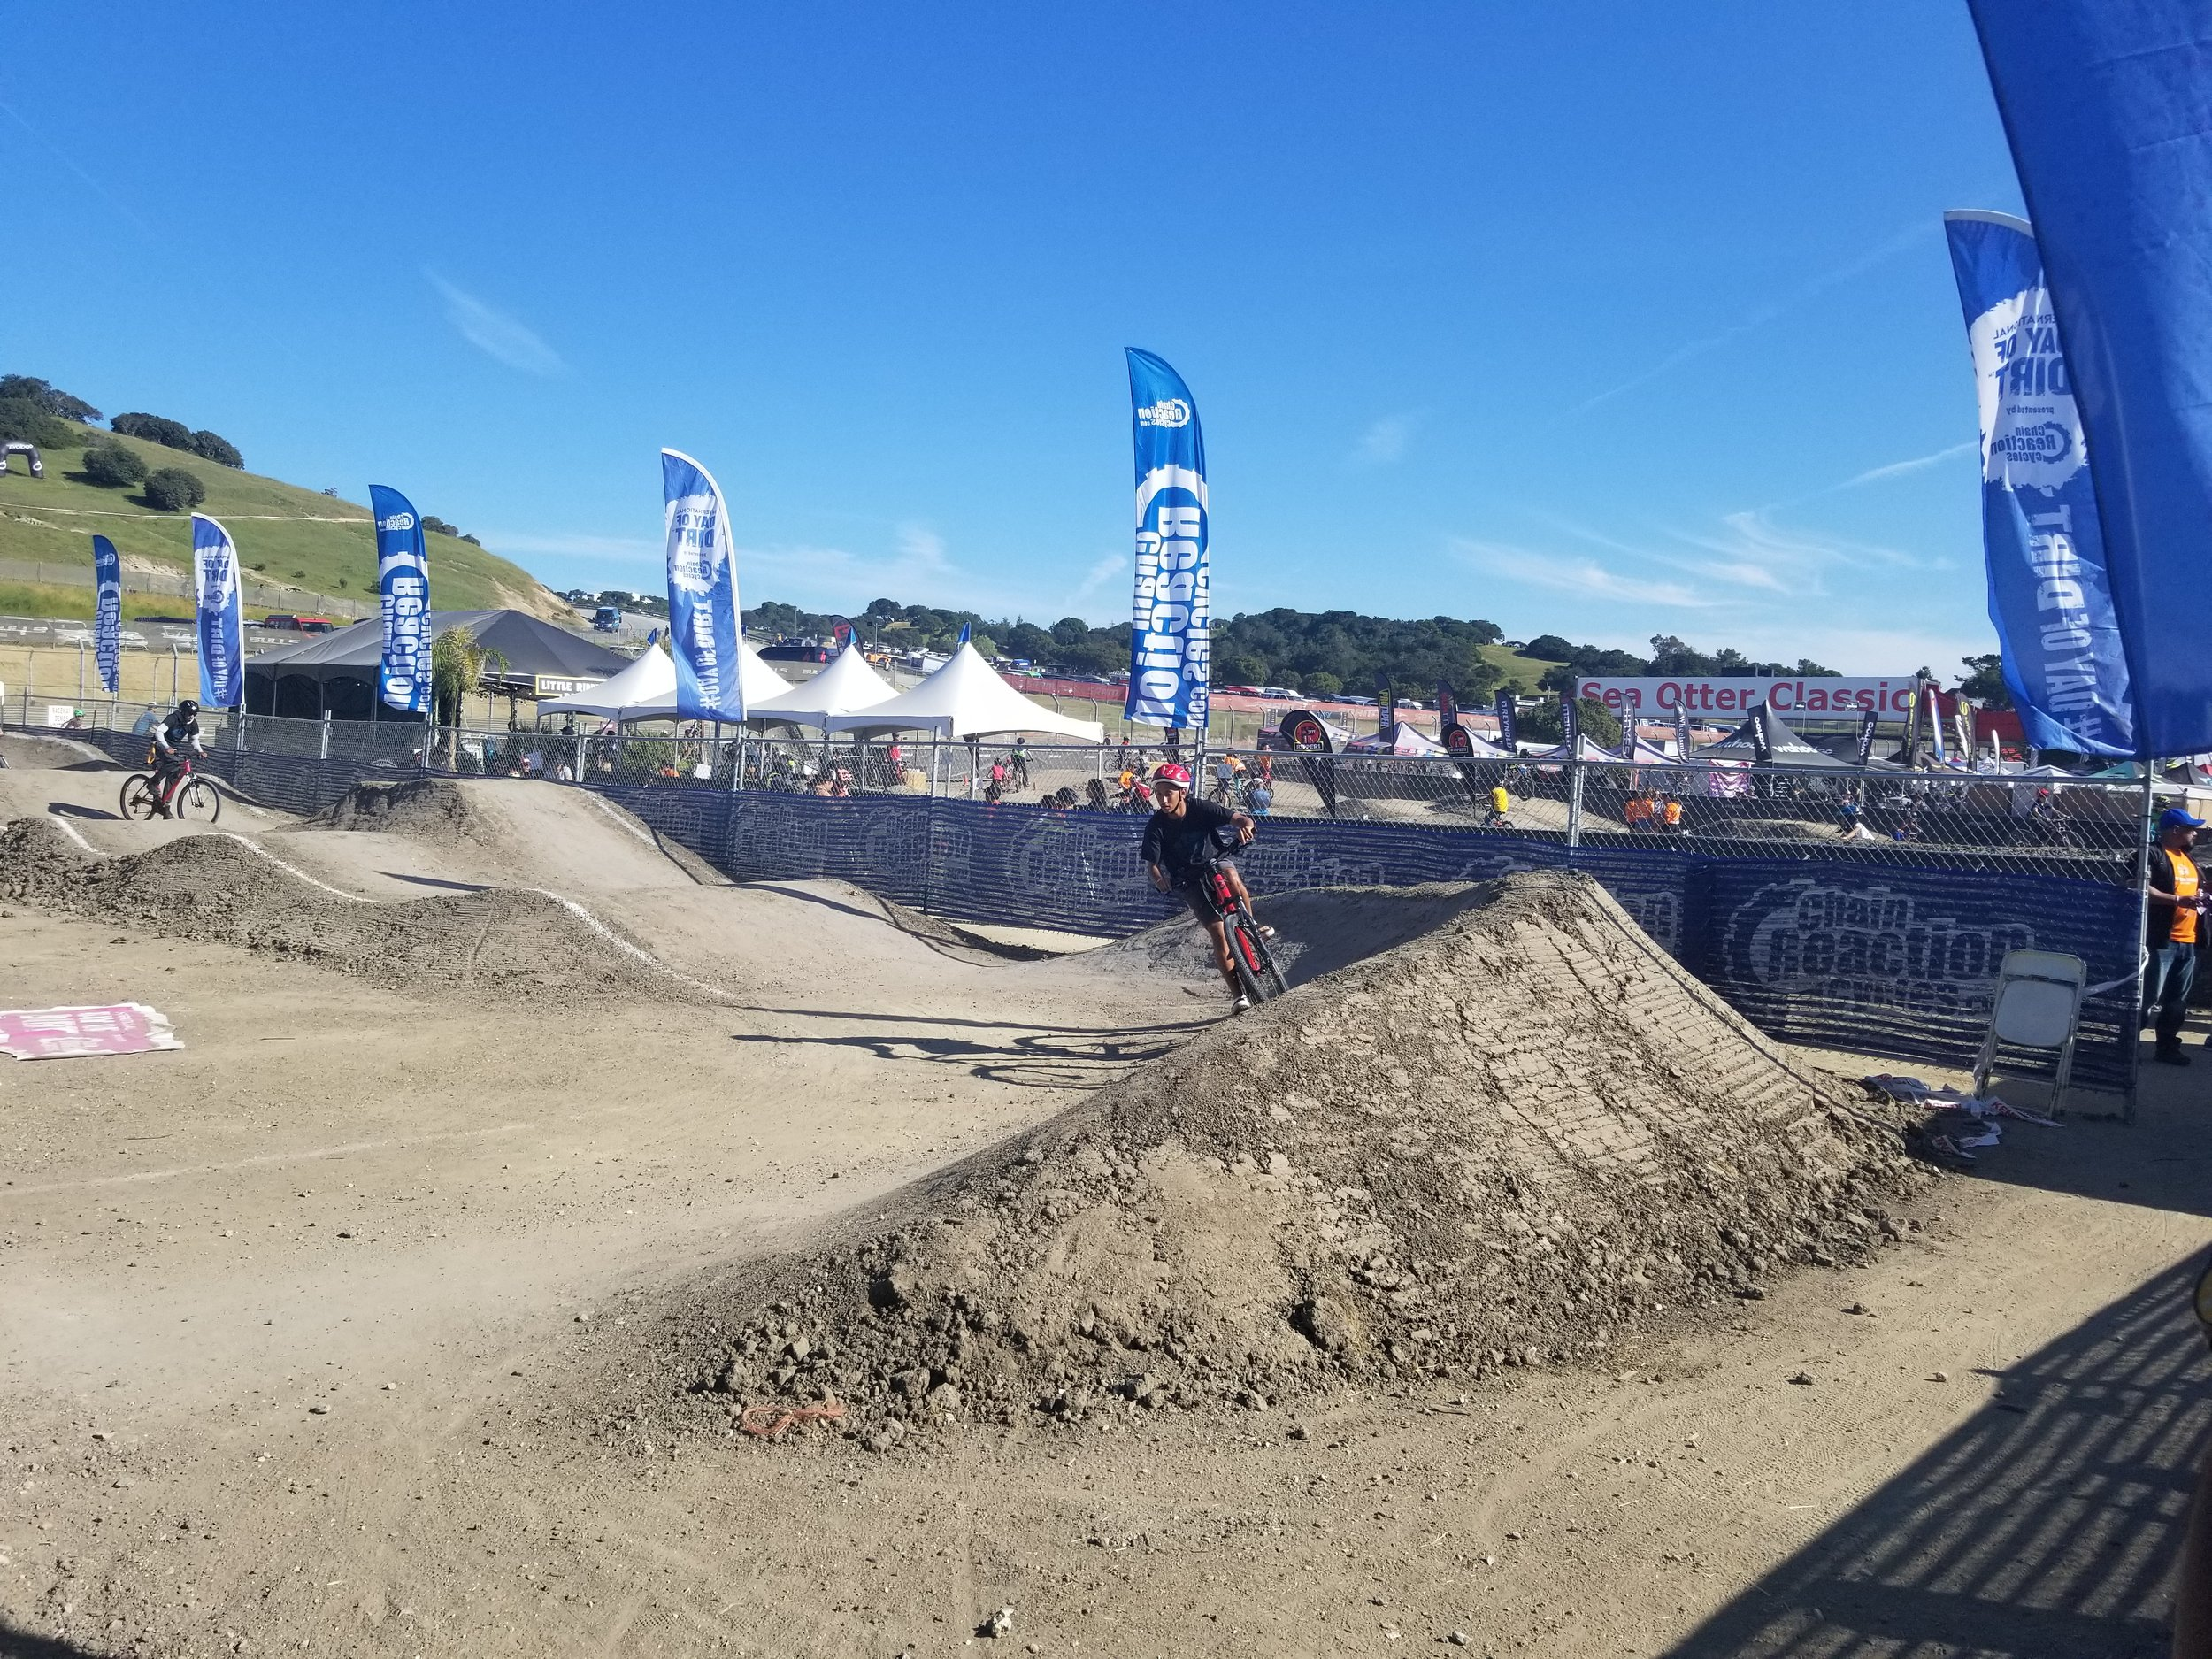 High Desert Riders_Rideronpumptrack_April2019.jpg